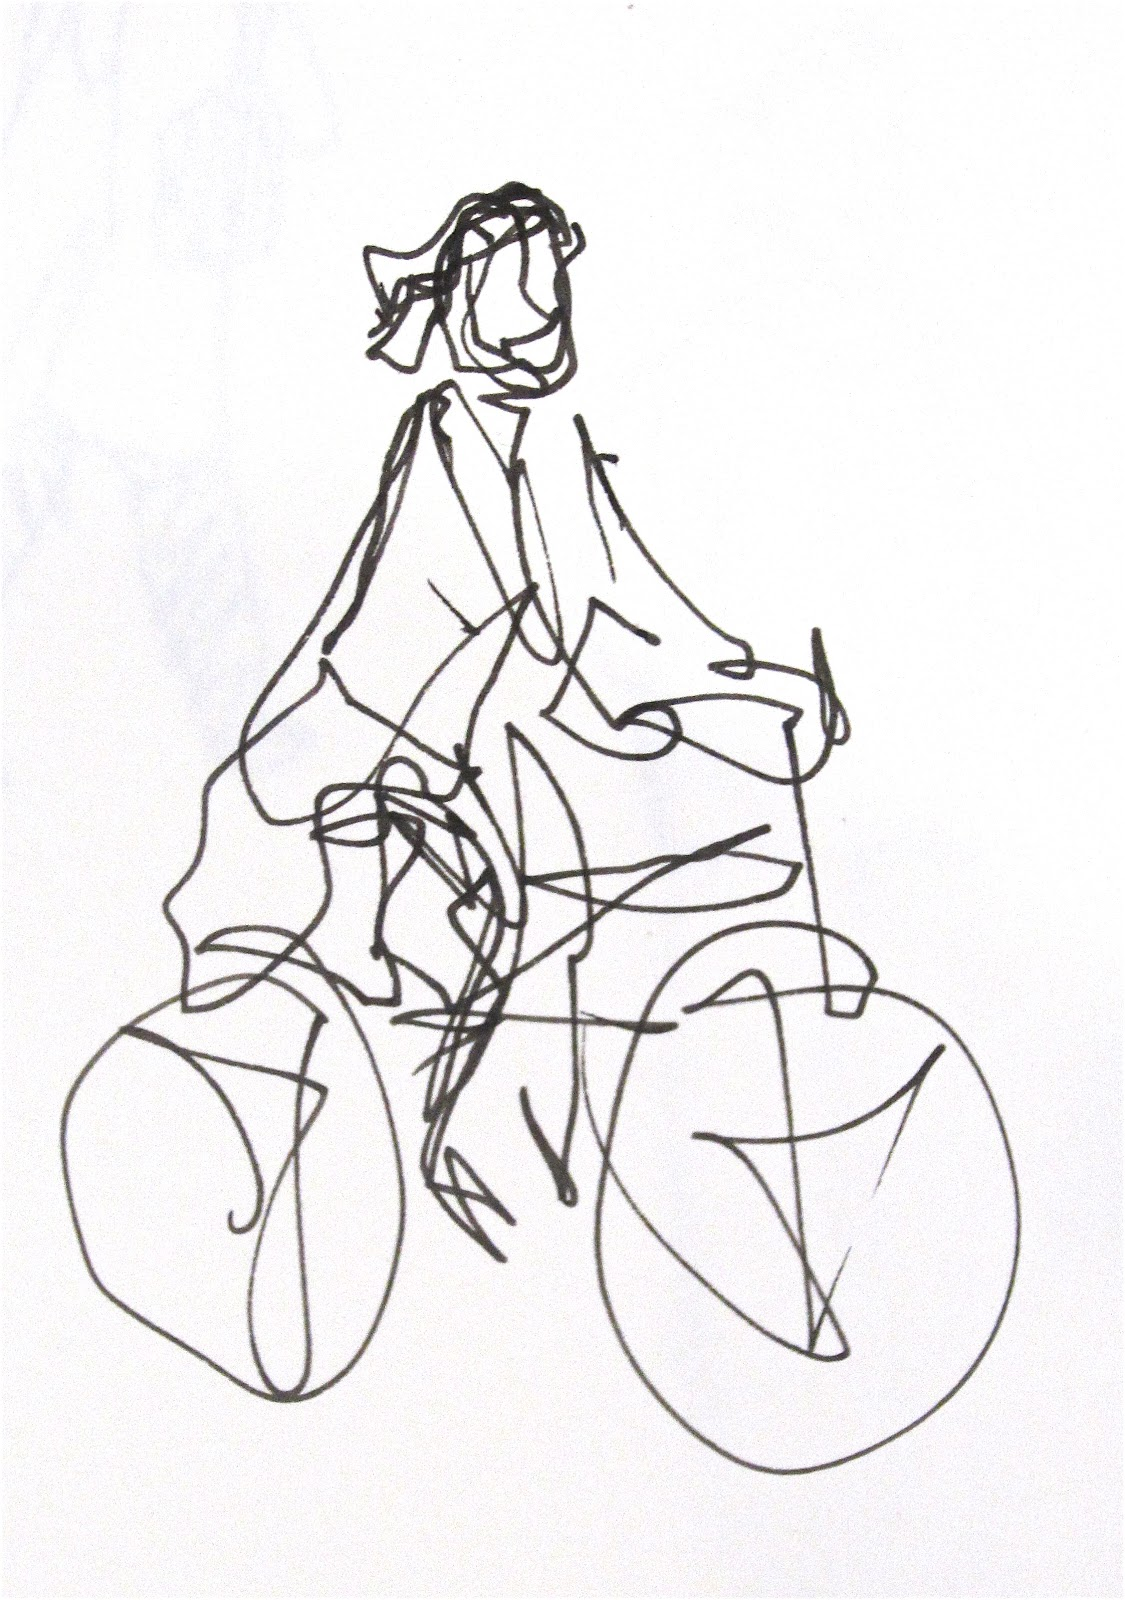 Continuous Contour Line Drawing At Getdrawings